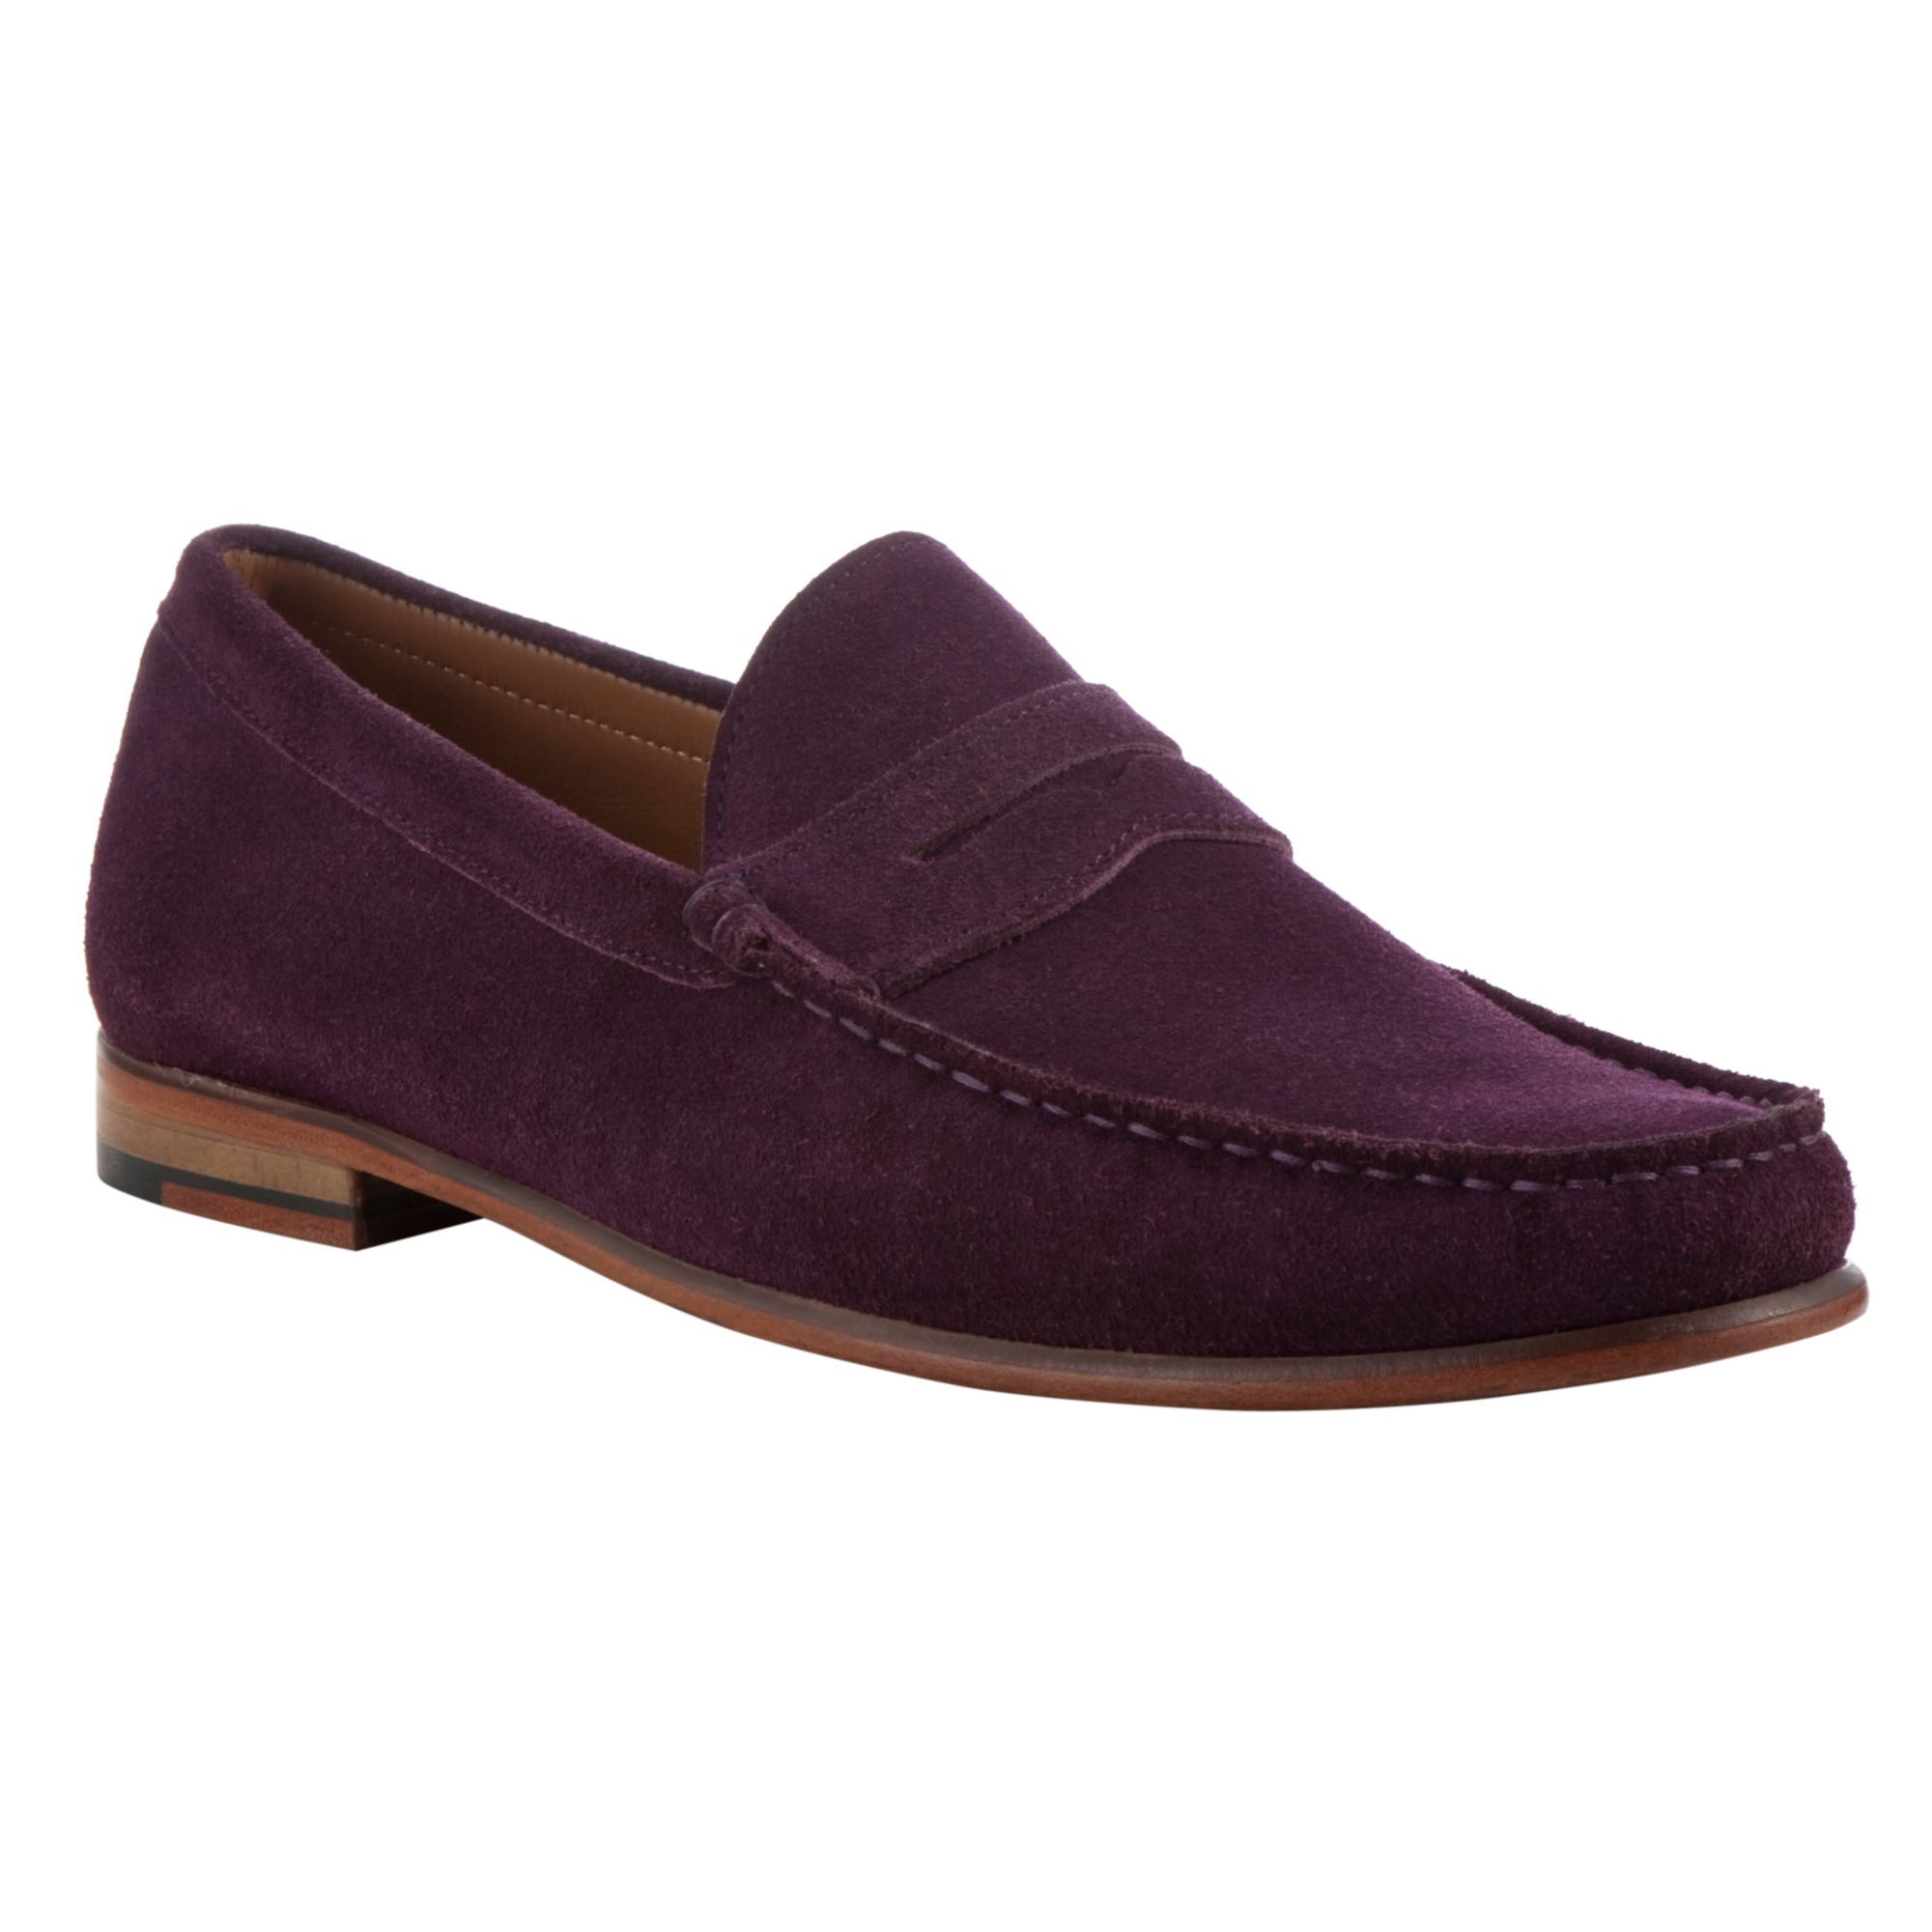 John Lewis Mens Shoes Loafers